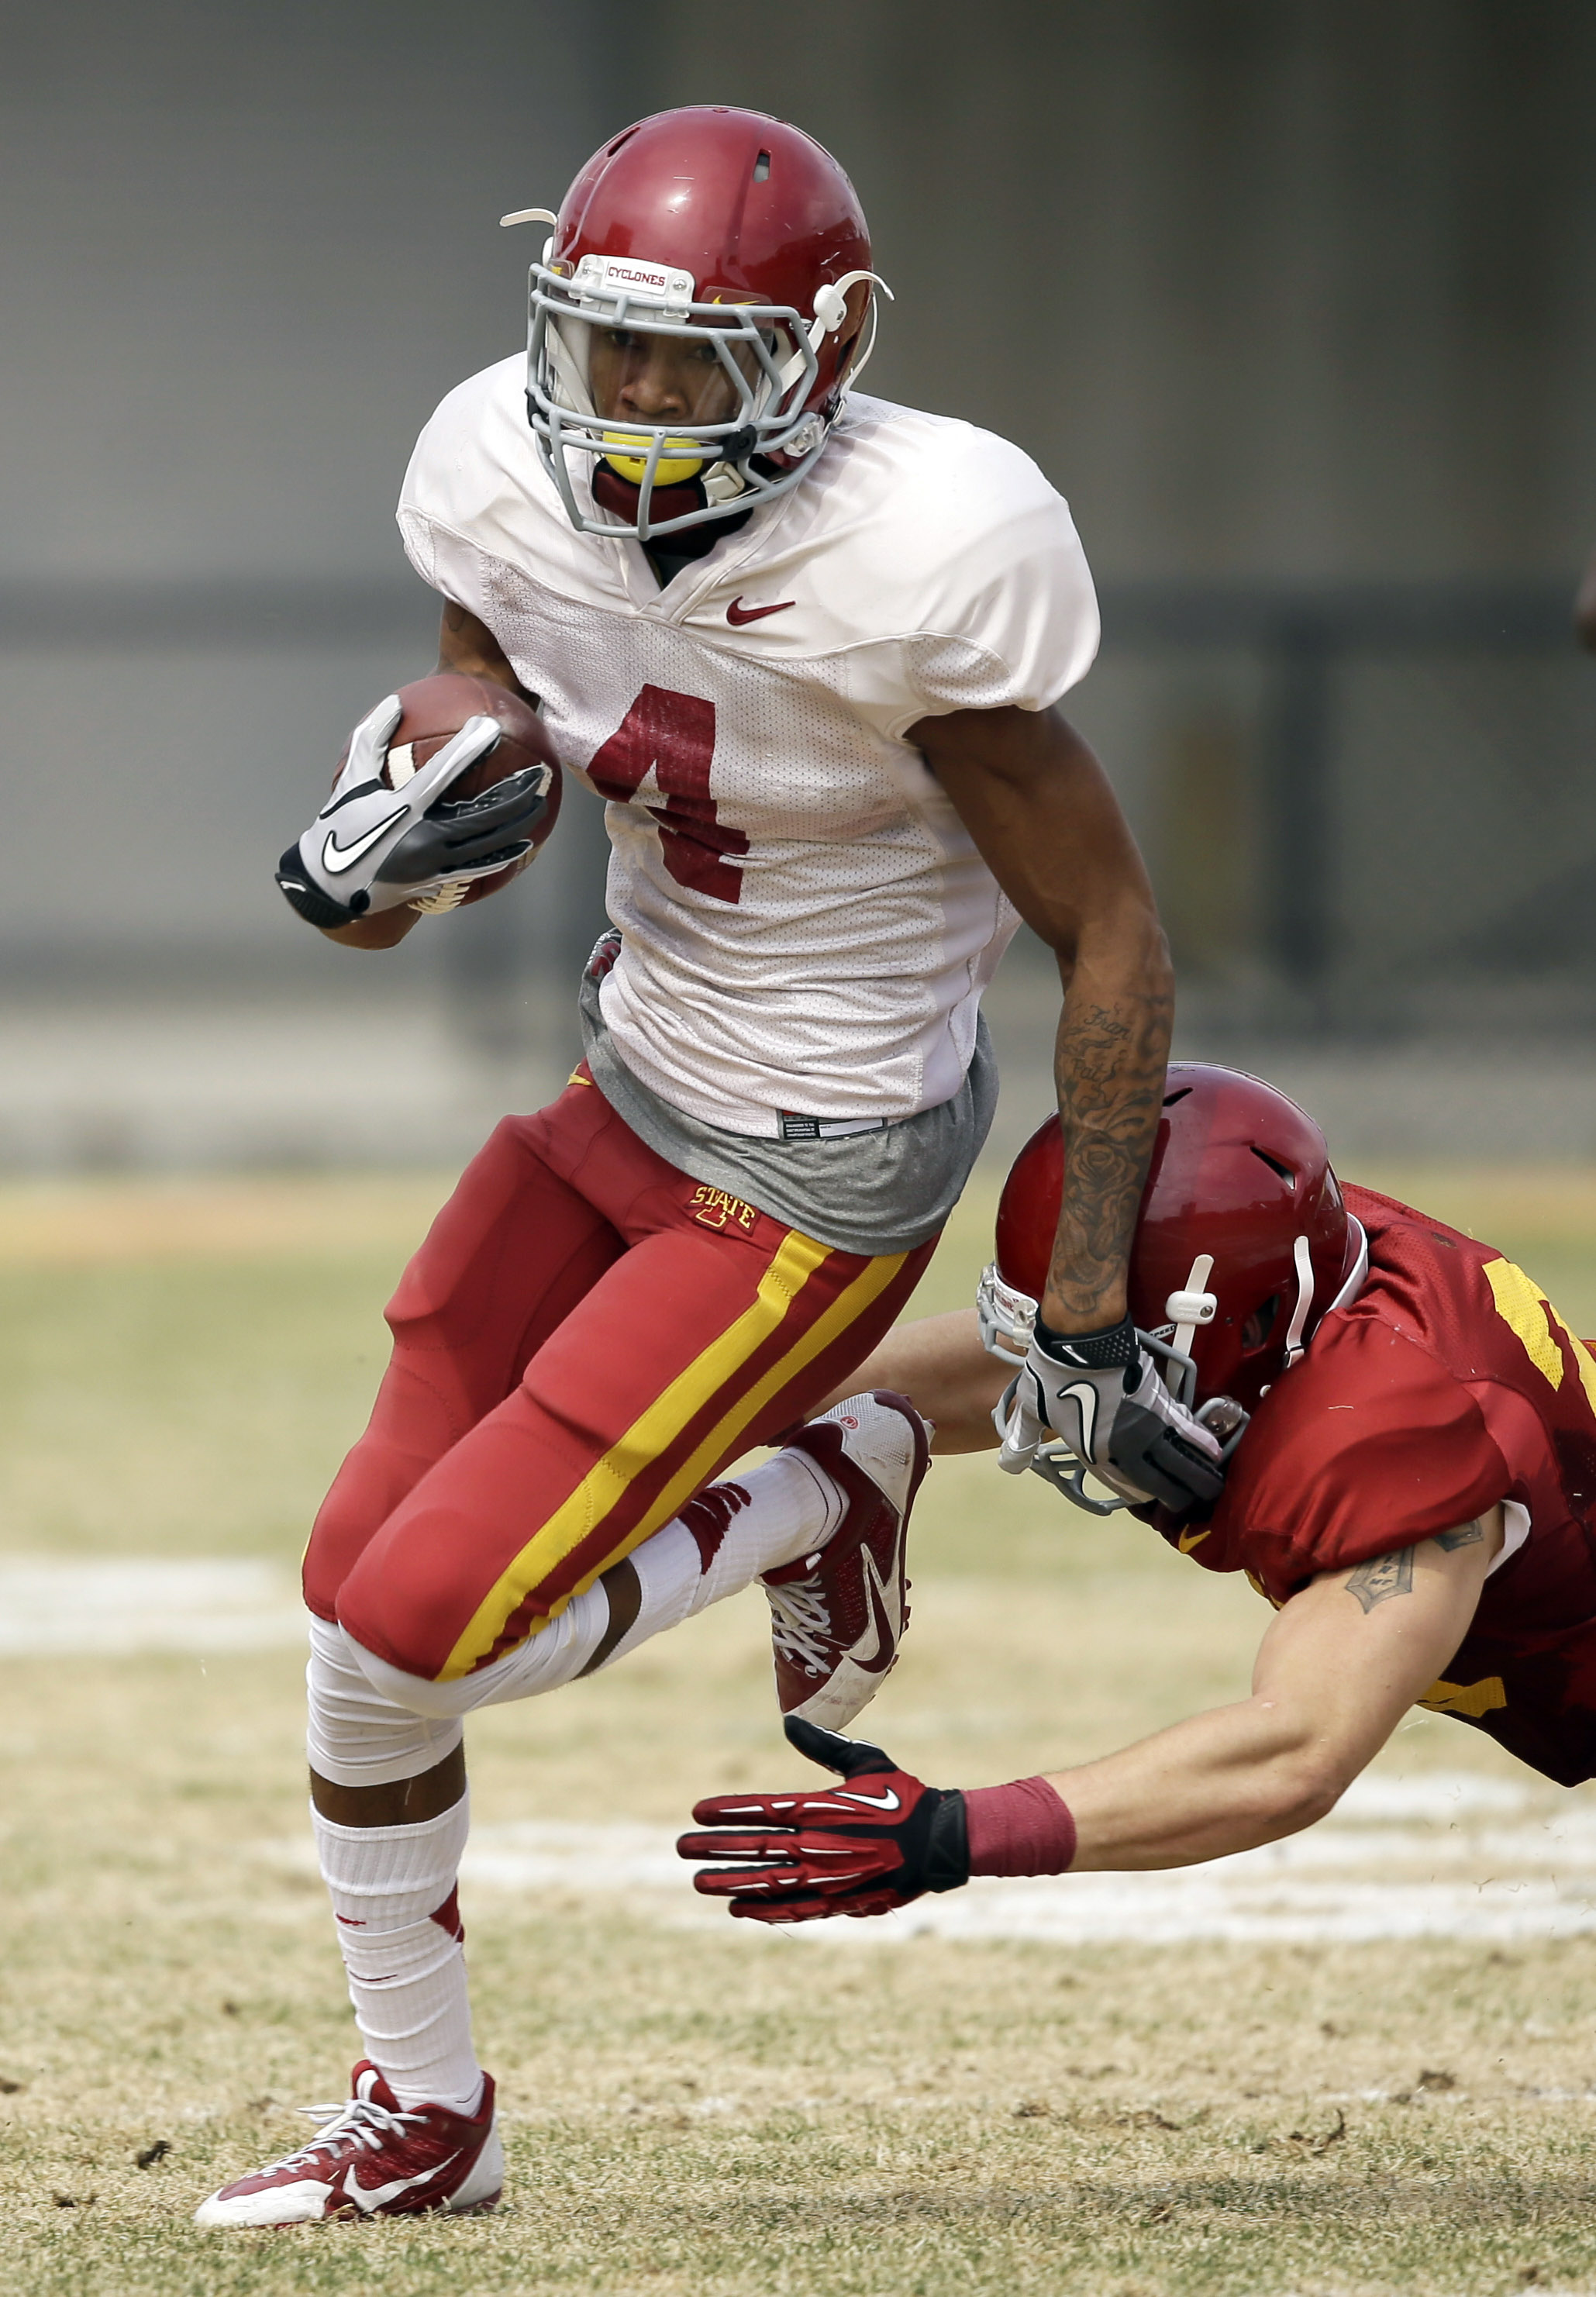 Iowa State wide receiver P.J. Harris runs from defensive back Darian Cotton, right, after making a reception during an annual NCAA college spring football game on Saturday, April 12, 2014, in Ames, Iowa. (AP Photo/Charlie Neibergall)